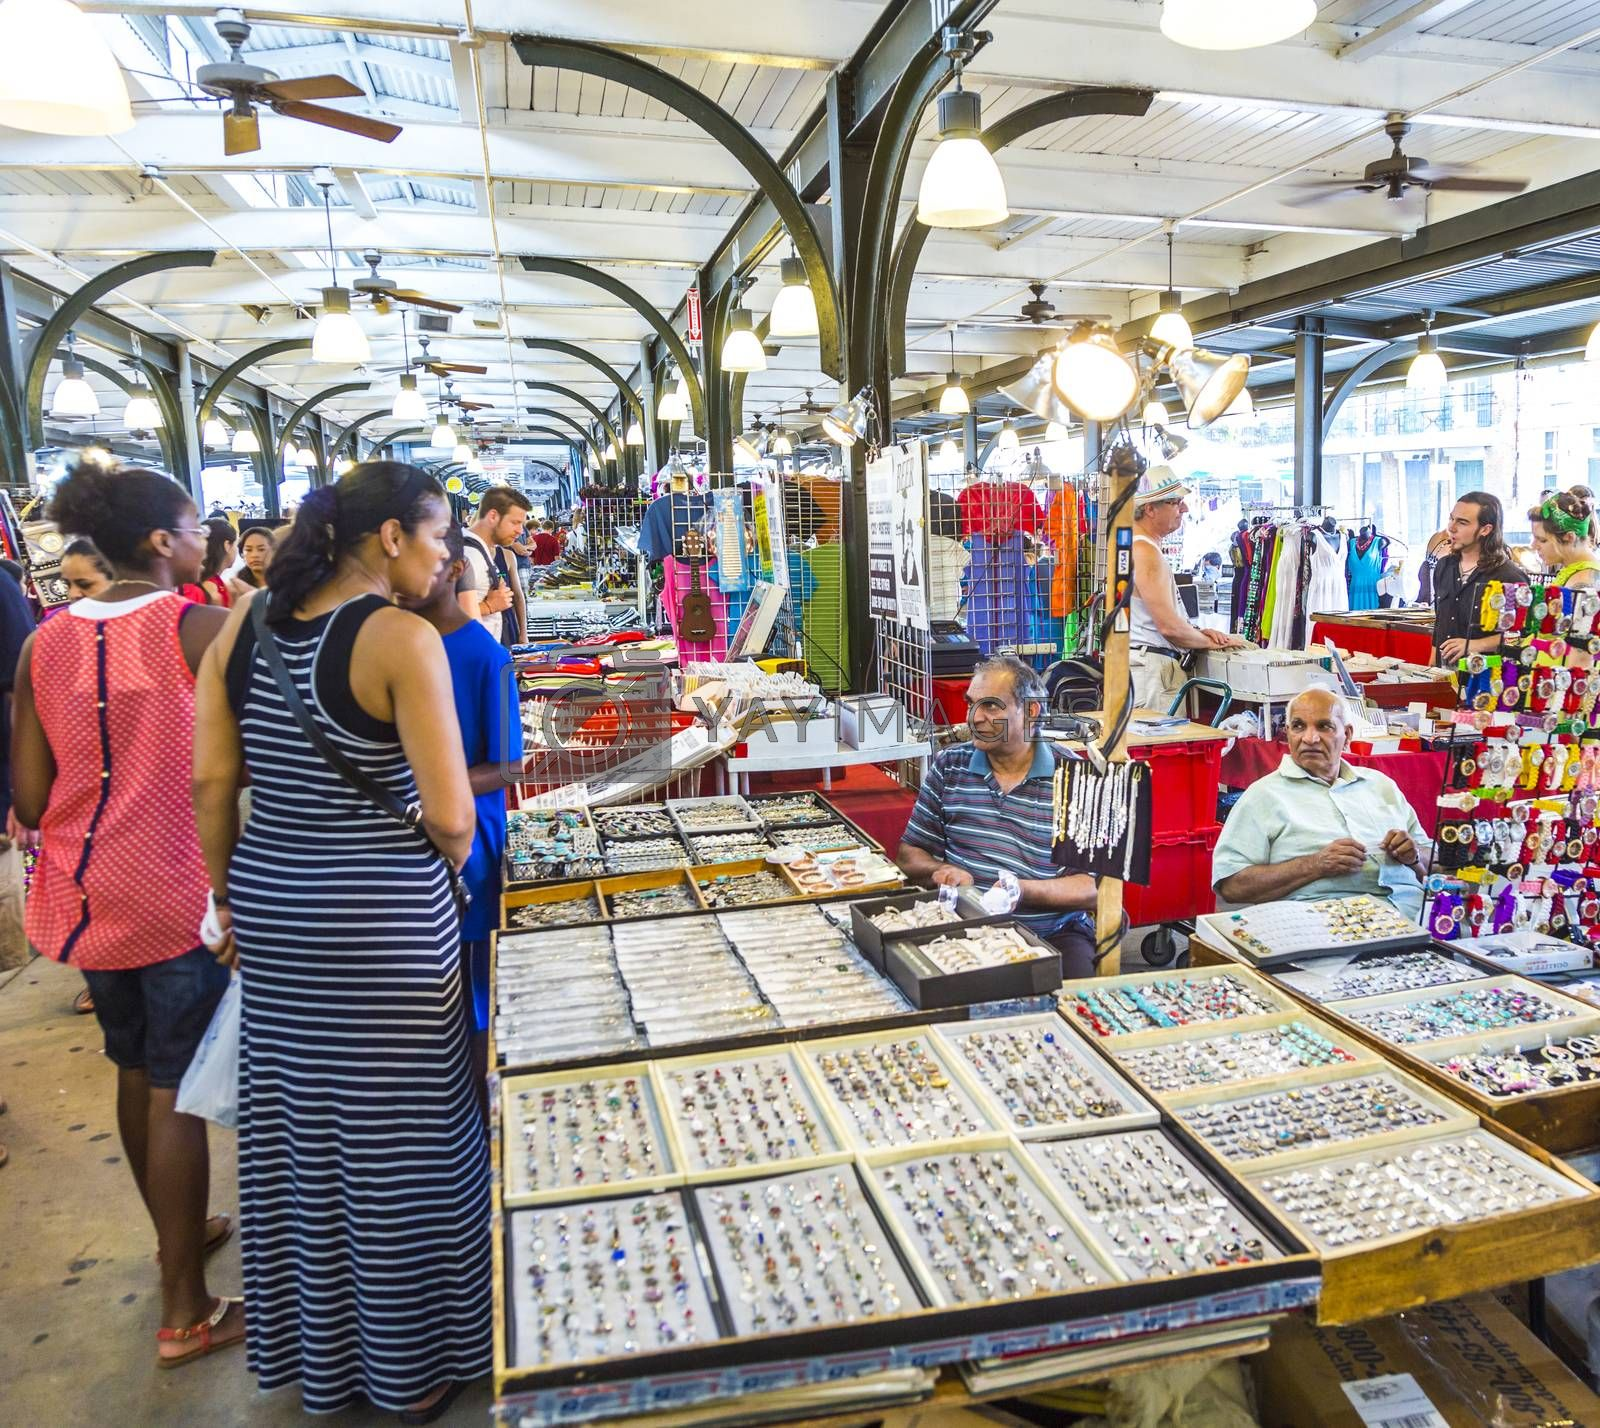 NEW ORLEANS, USA - JULY 15, 2013: The French Market on Decatur Street is a popular tourist attraction in the New Orleans French Quarter district in New Orleans, USA.